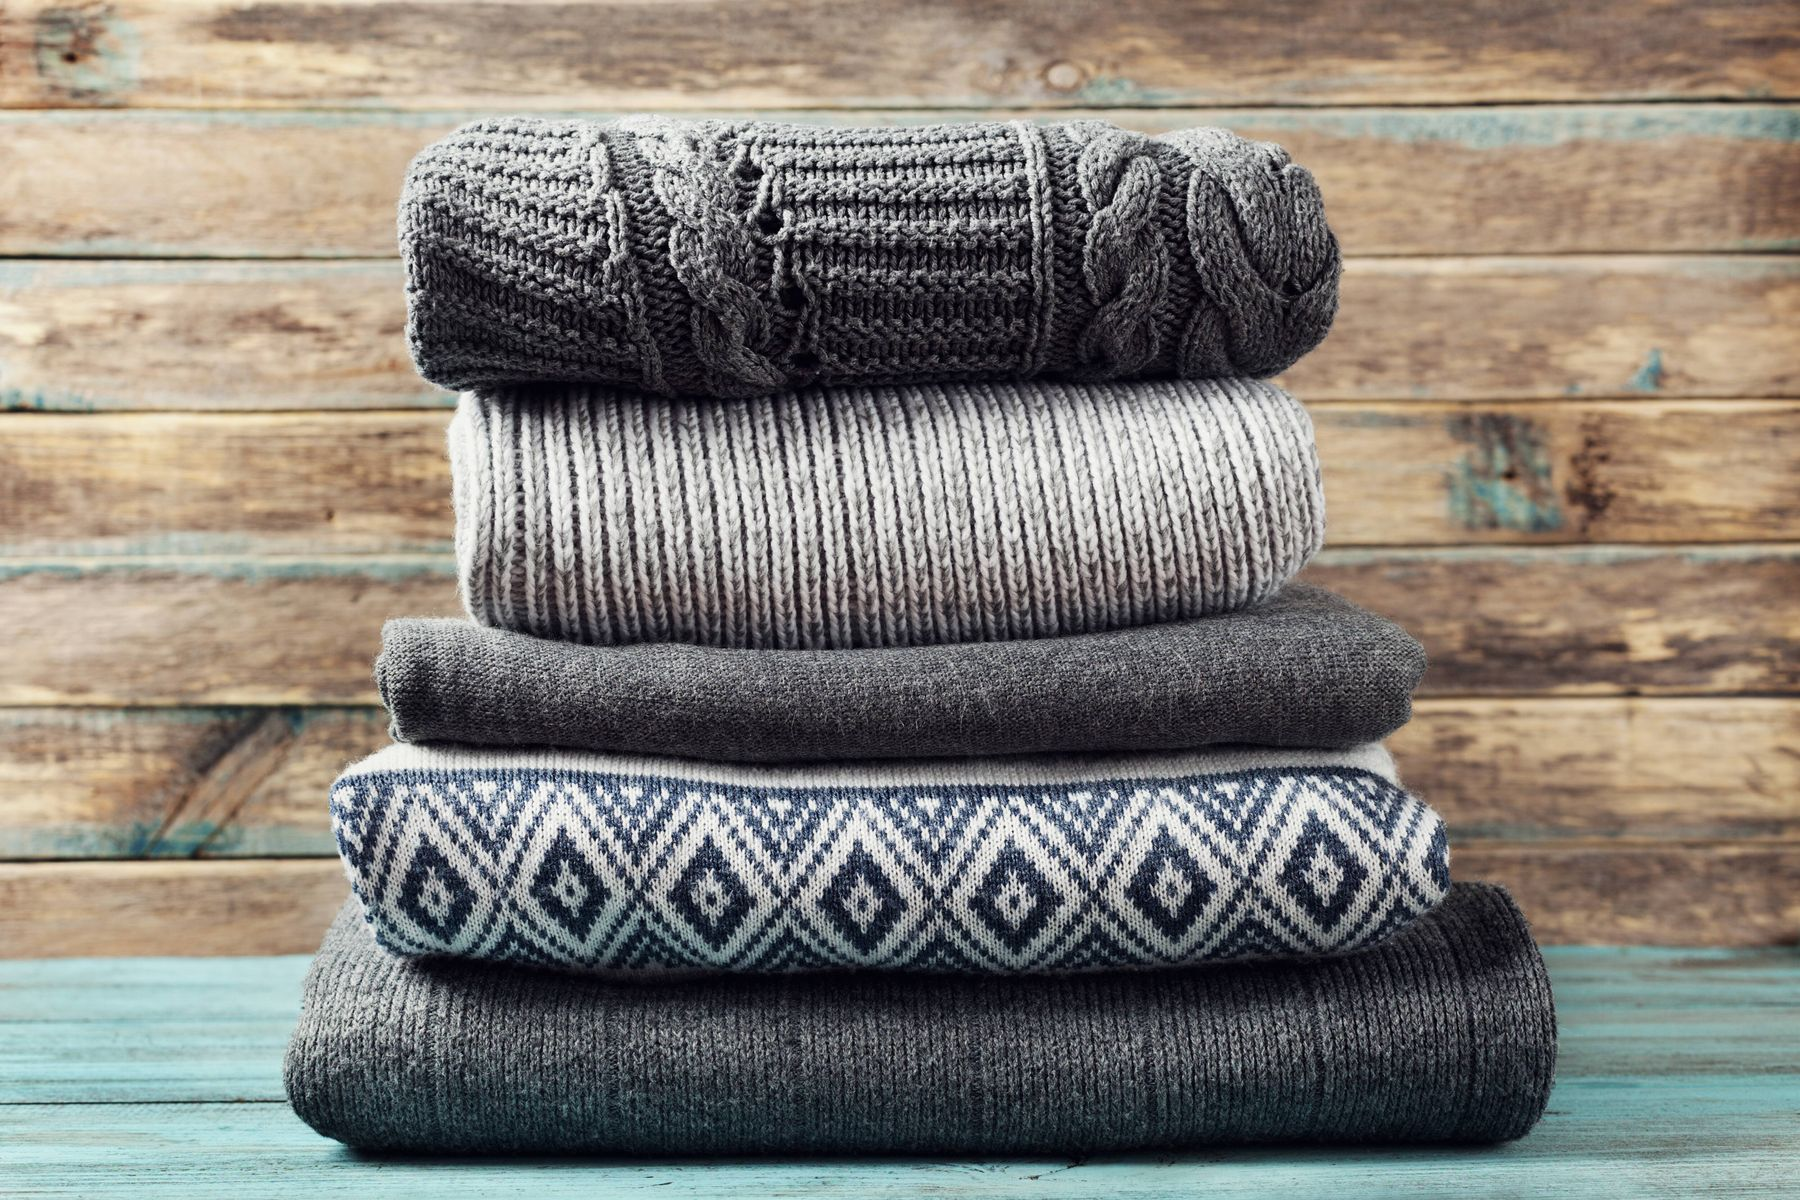 How to take care of your woollens cloths